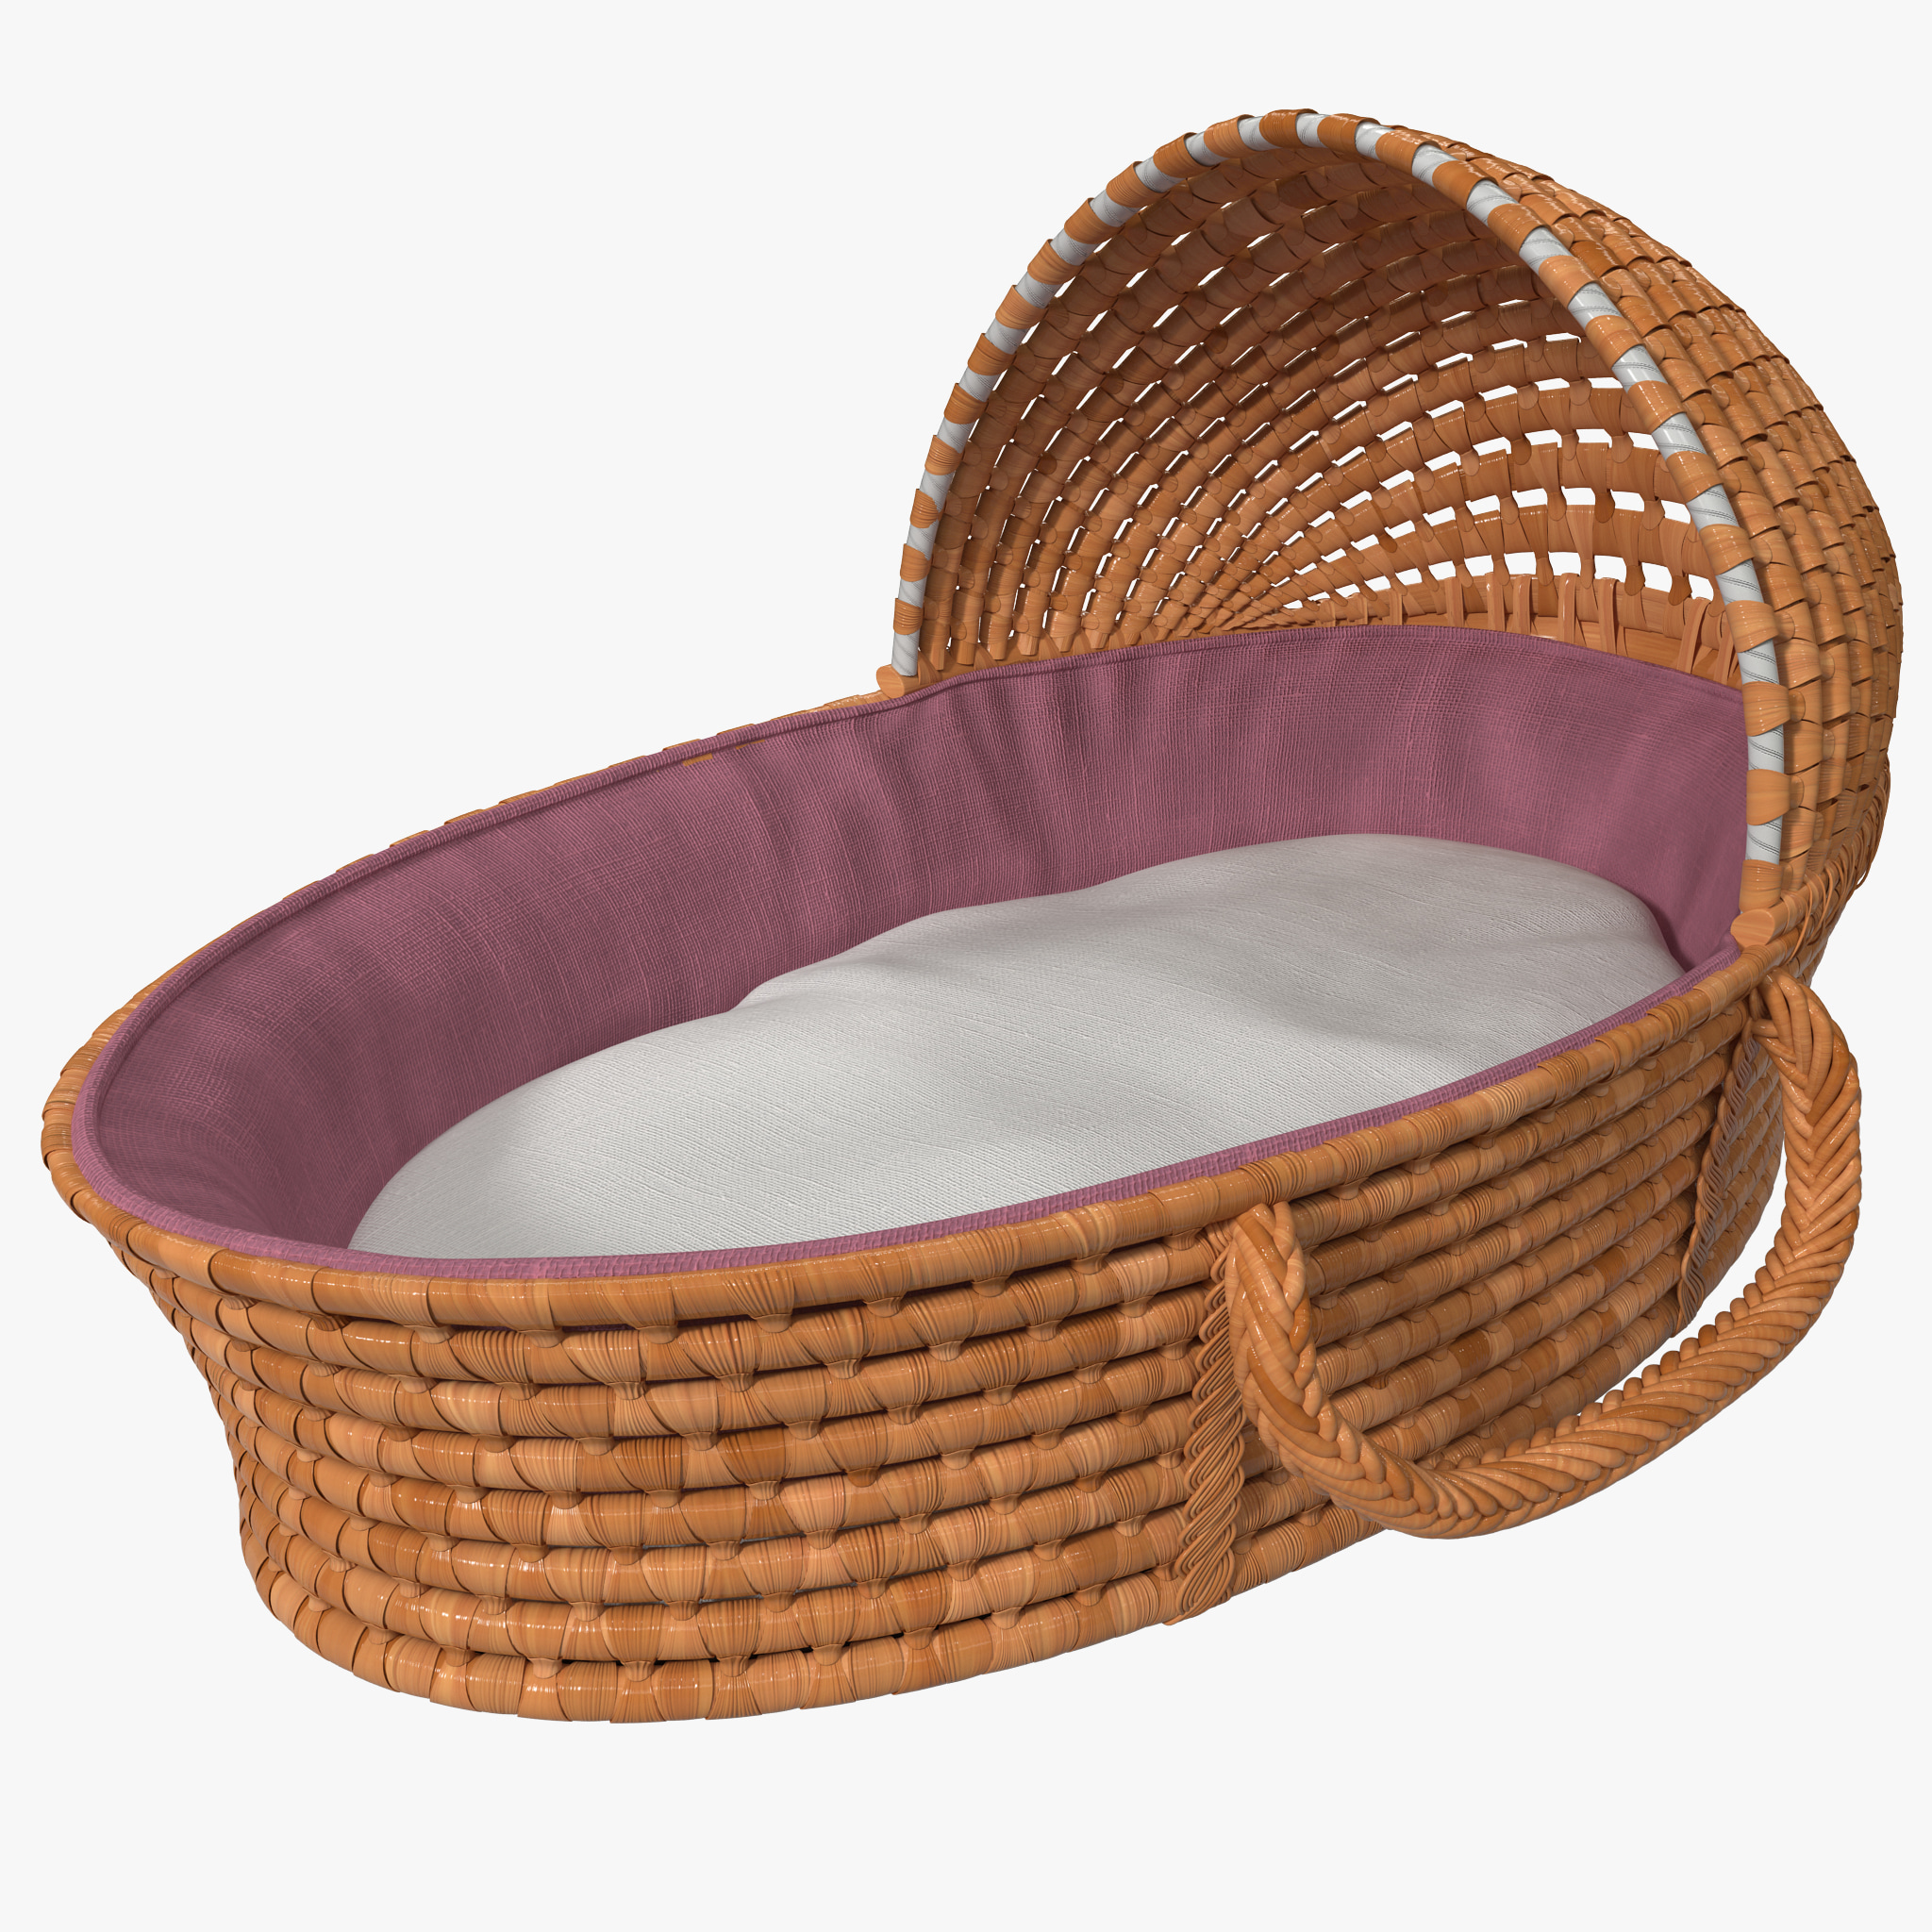 Empty Basket Png 21412 with resolution: 691x932, you will find many ...